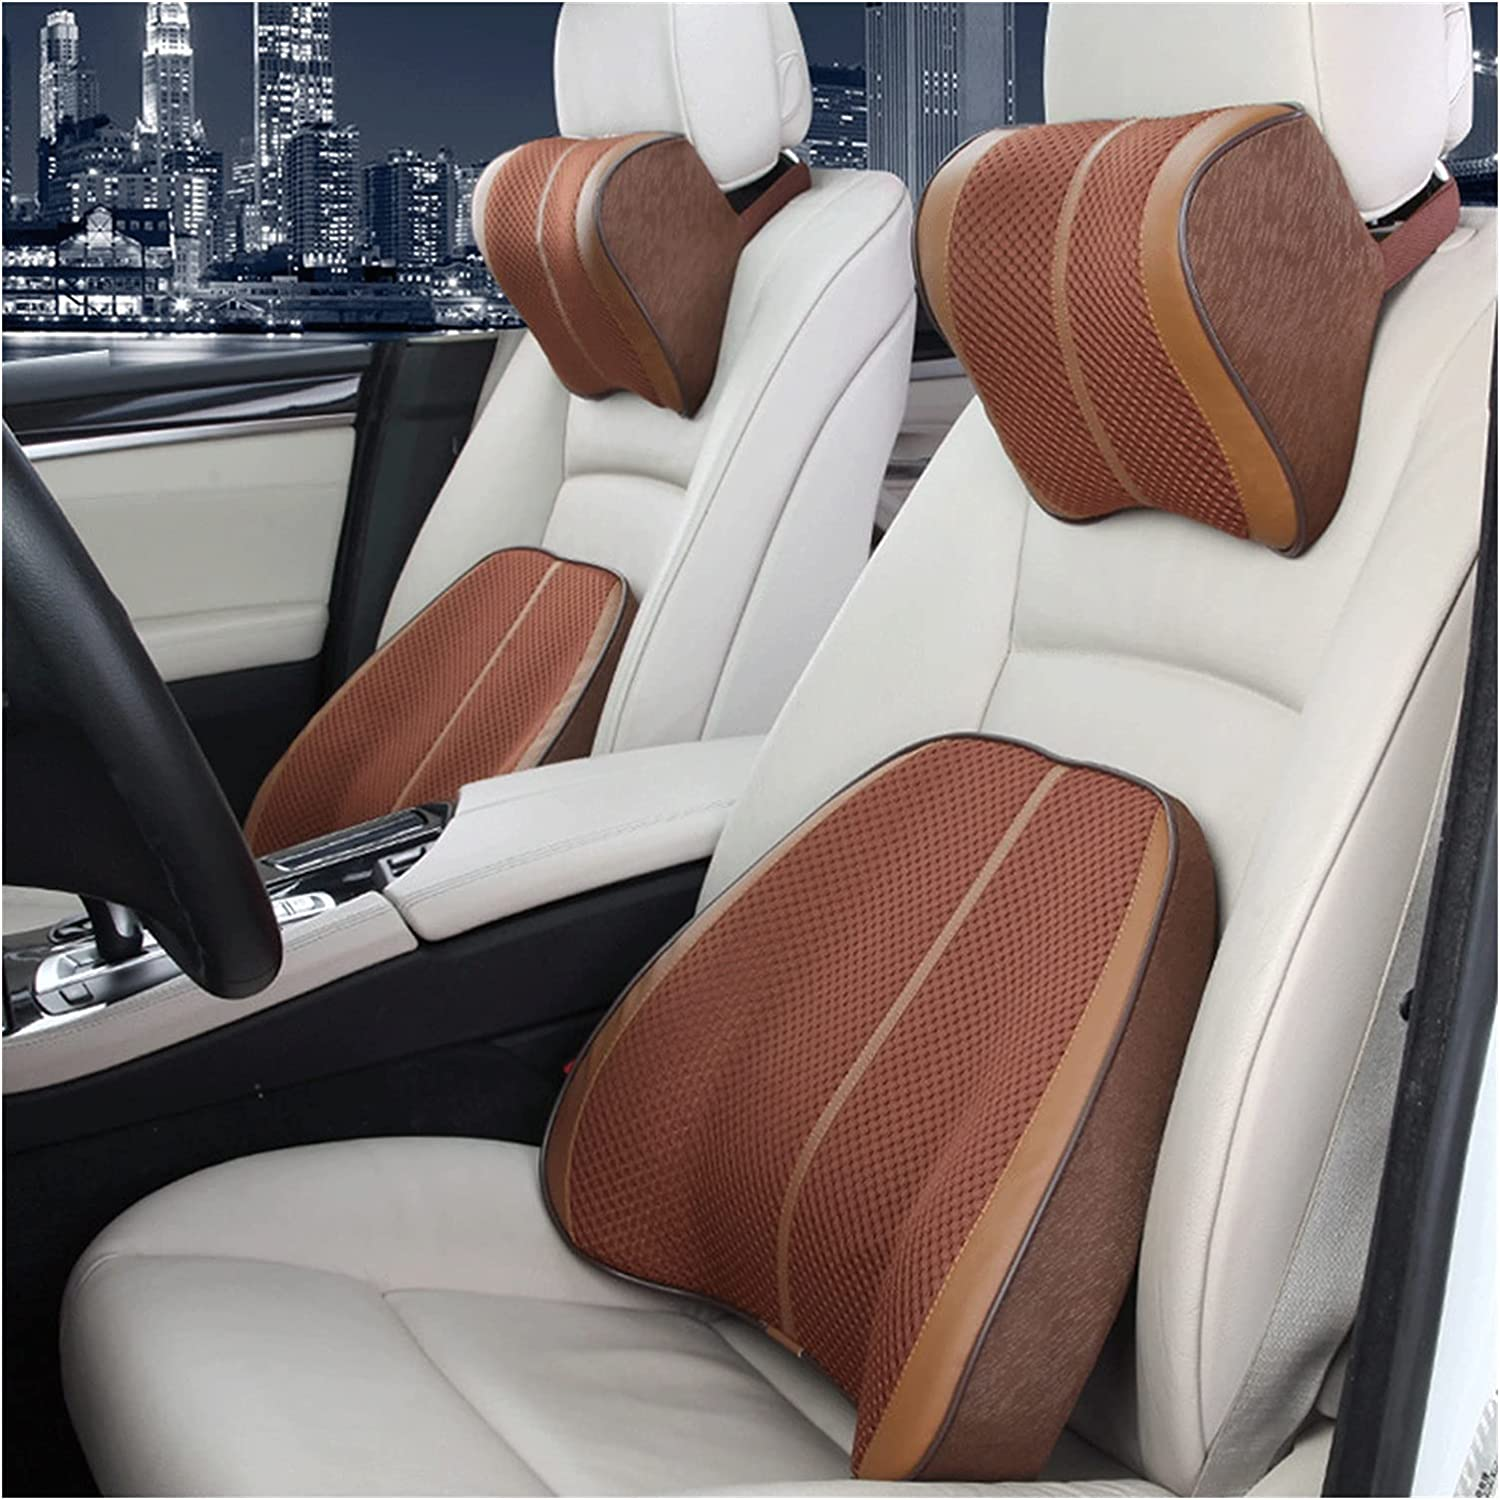 QSWL Lumbar Support Cushion Memory 1 year warranty Pillows Foam 67% OFF of fixed price N BackCar